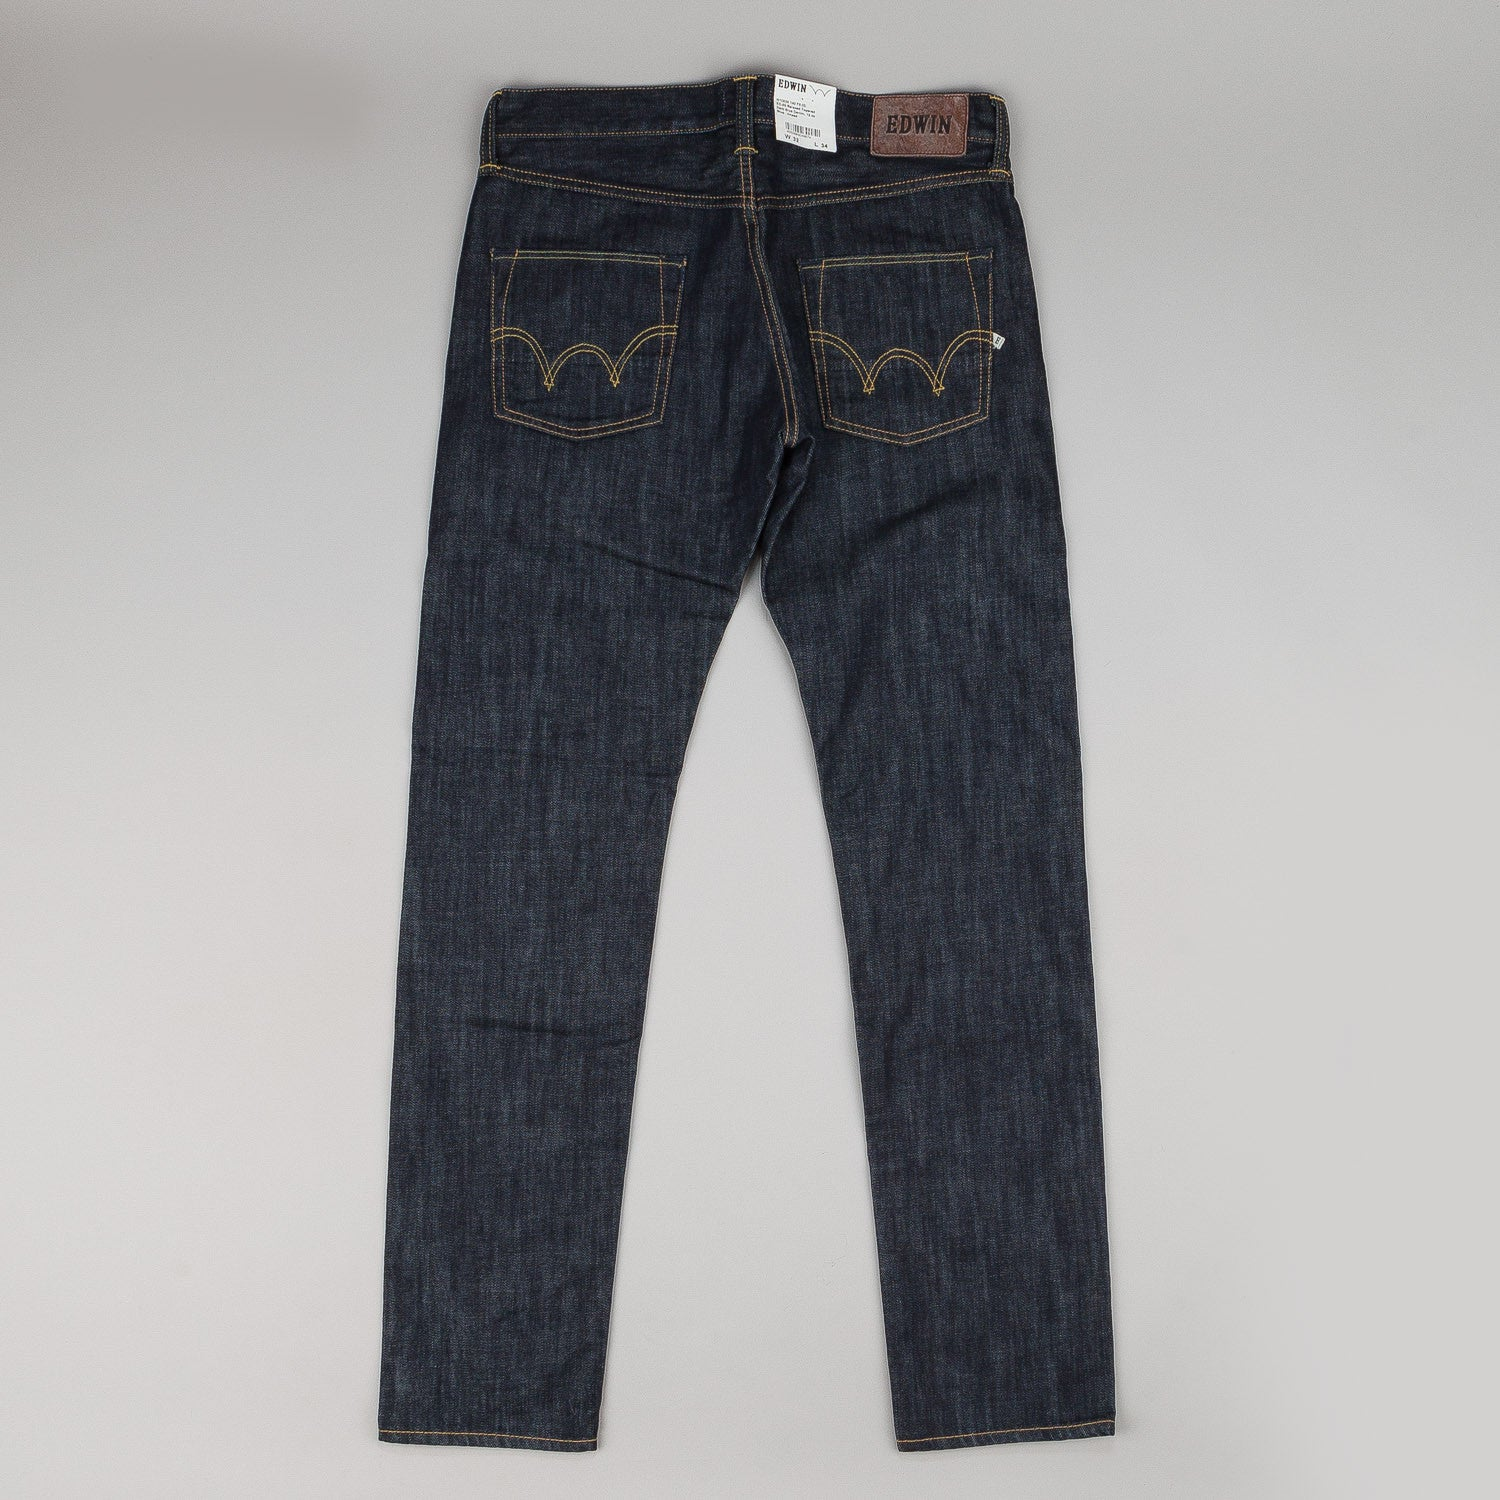 Edwin ED-55 Jeans - Dark Blue Denim Rinsed